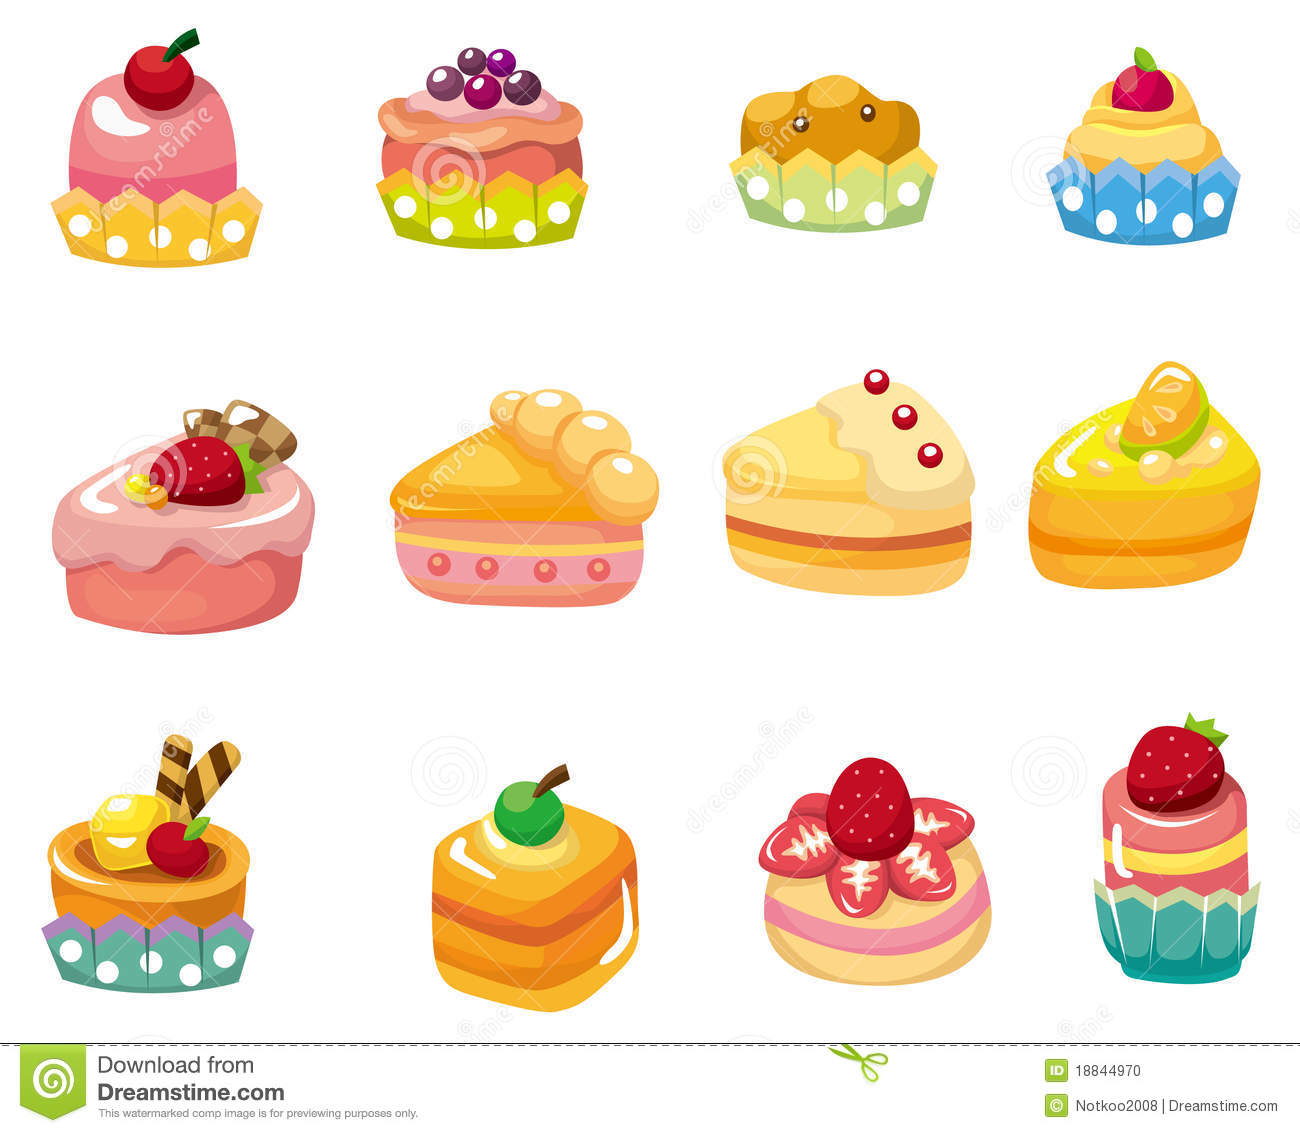 Image result for cake images cartoon